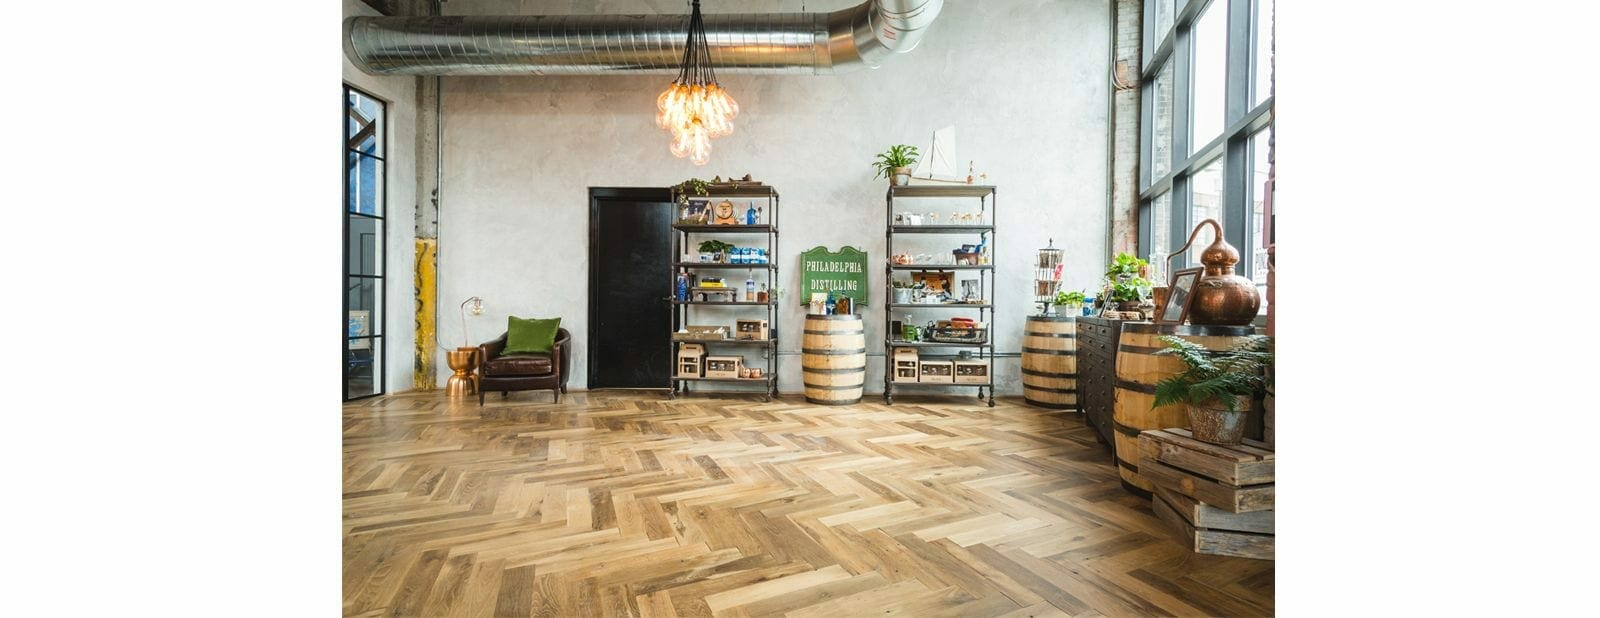 philadelphia distilling flooring 2